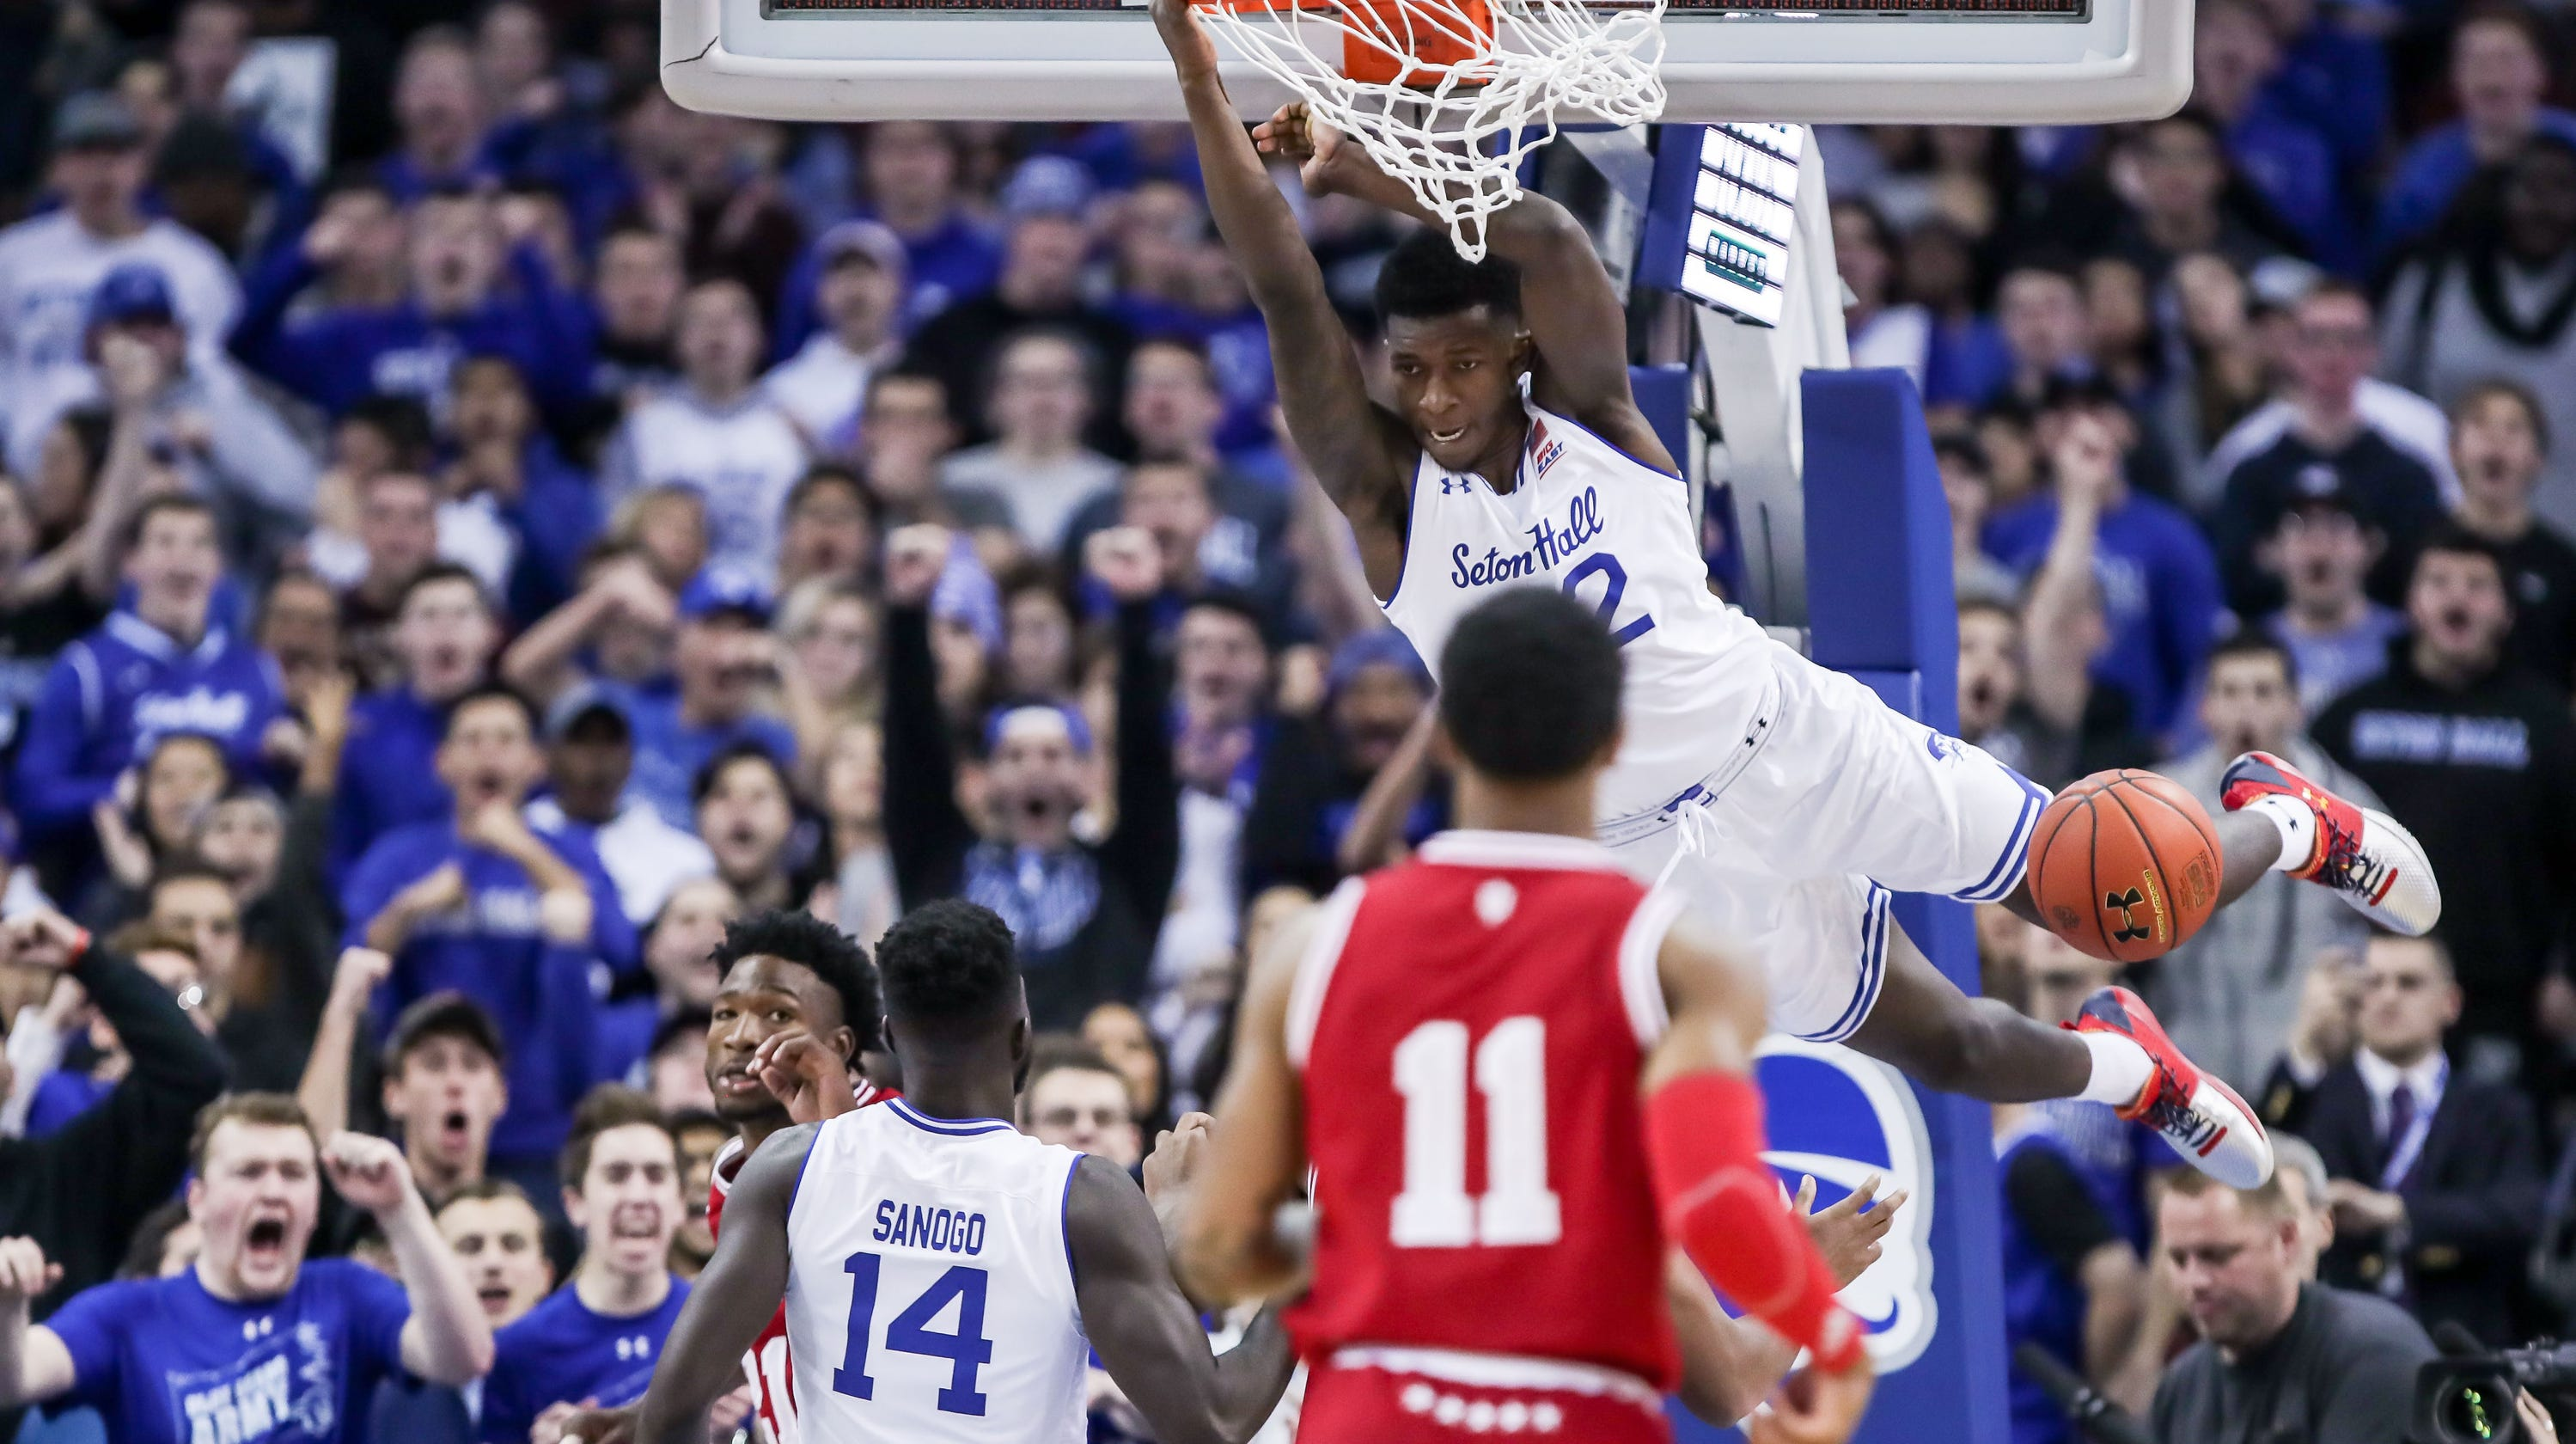 seton hall basketball: season preview and prediction